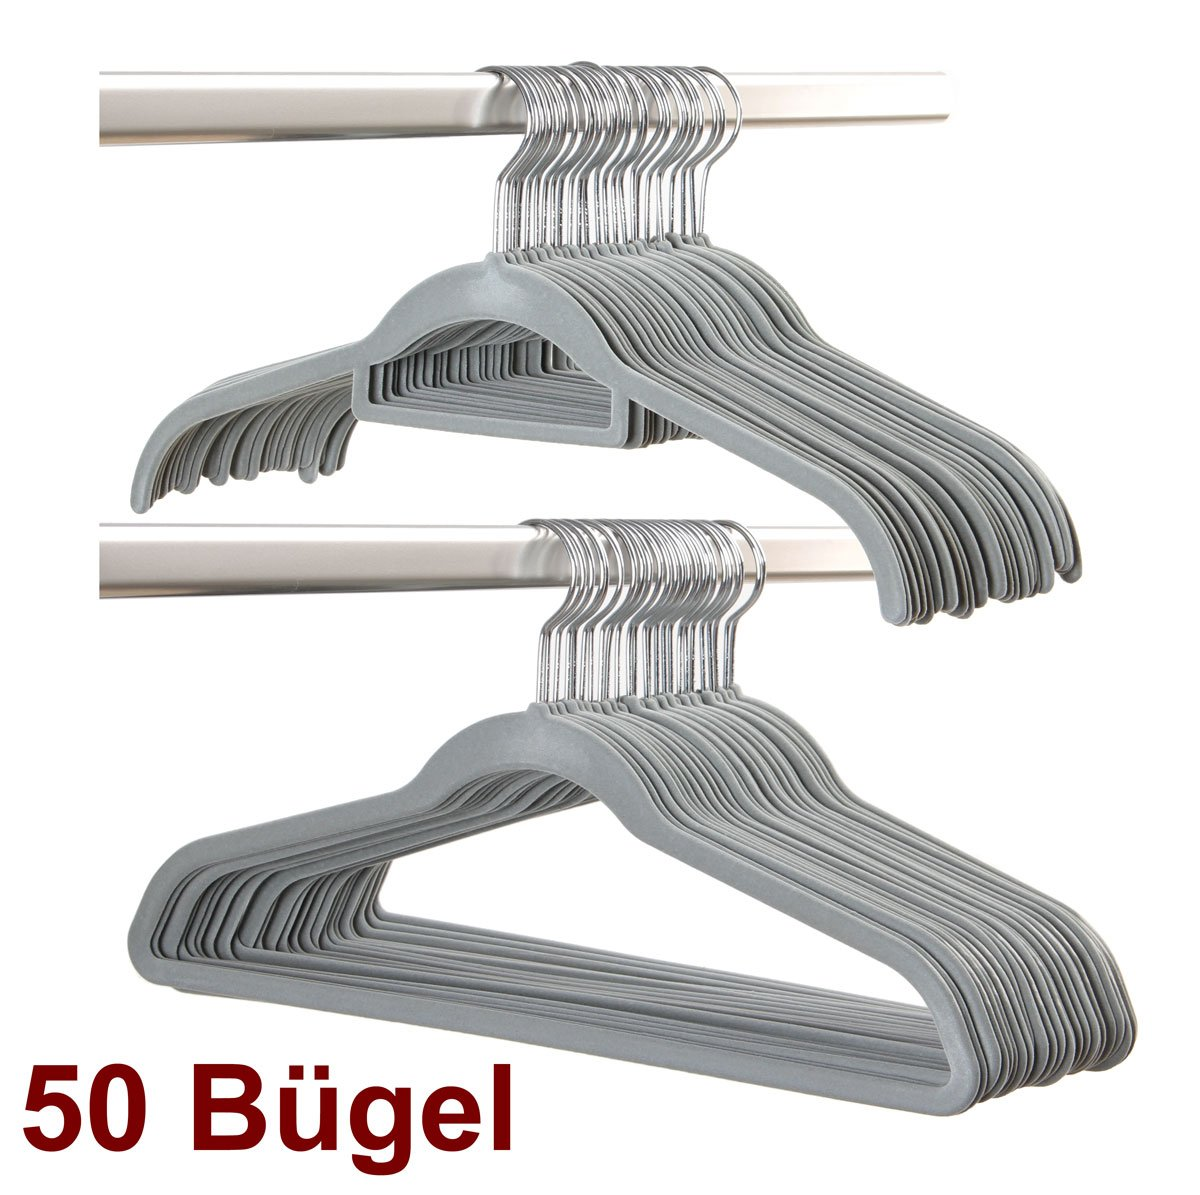 Smart-Hangers -50 Bügel- Grau/magic raumspar rutschfeste ...